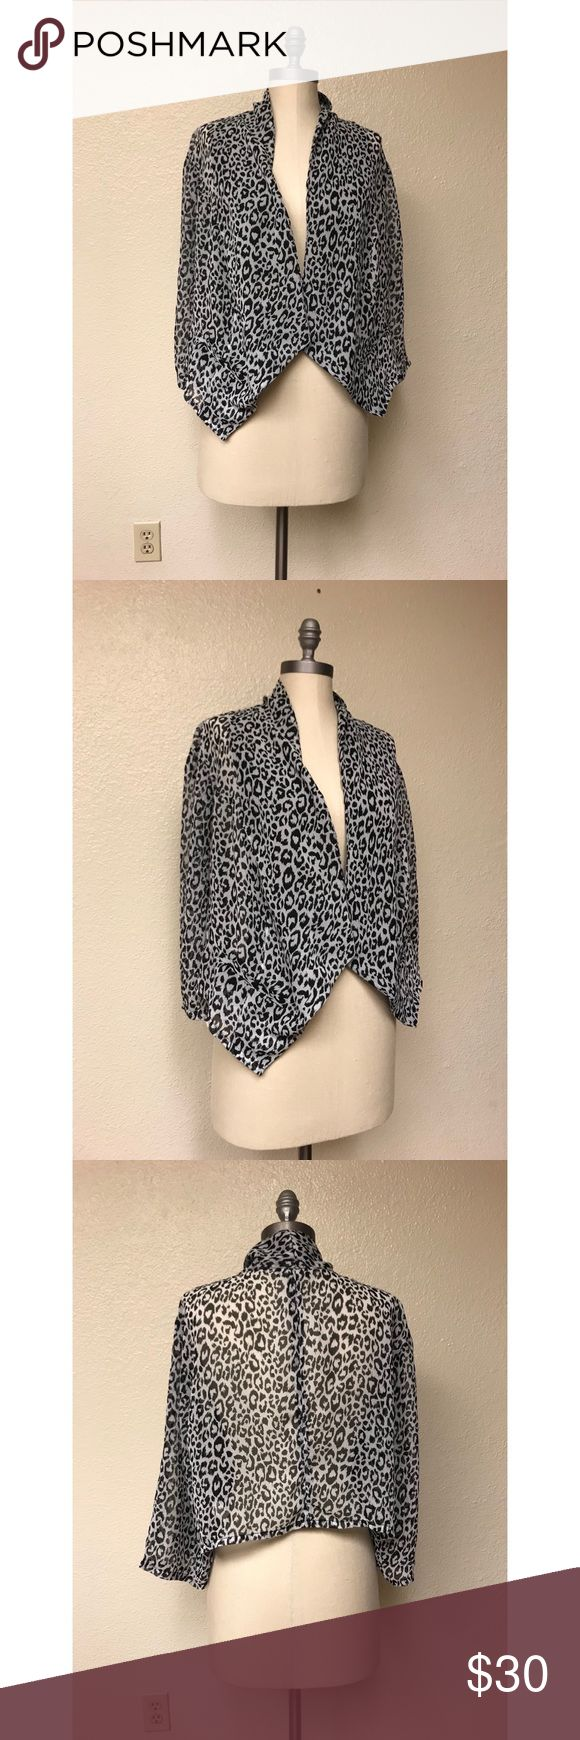 ❤️Torrid Leopard Cardigan❤️ Excellent condition. Size XL. No rips, stains or tears. torrid Sweaters Cardigans